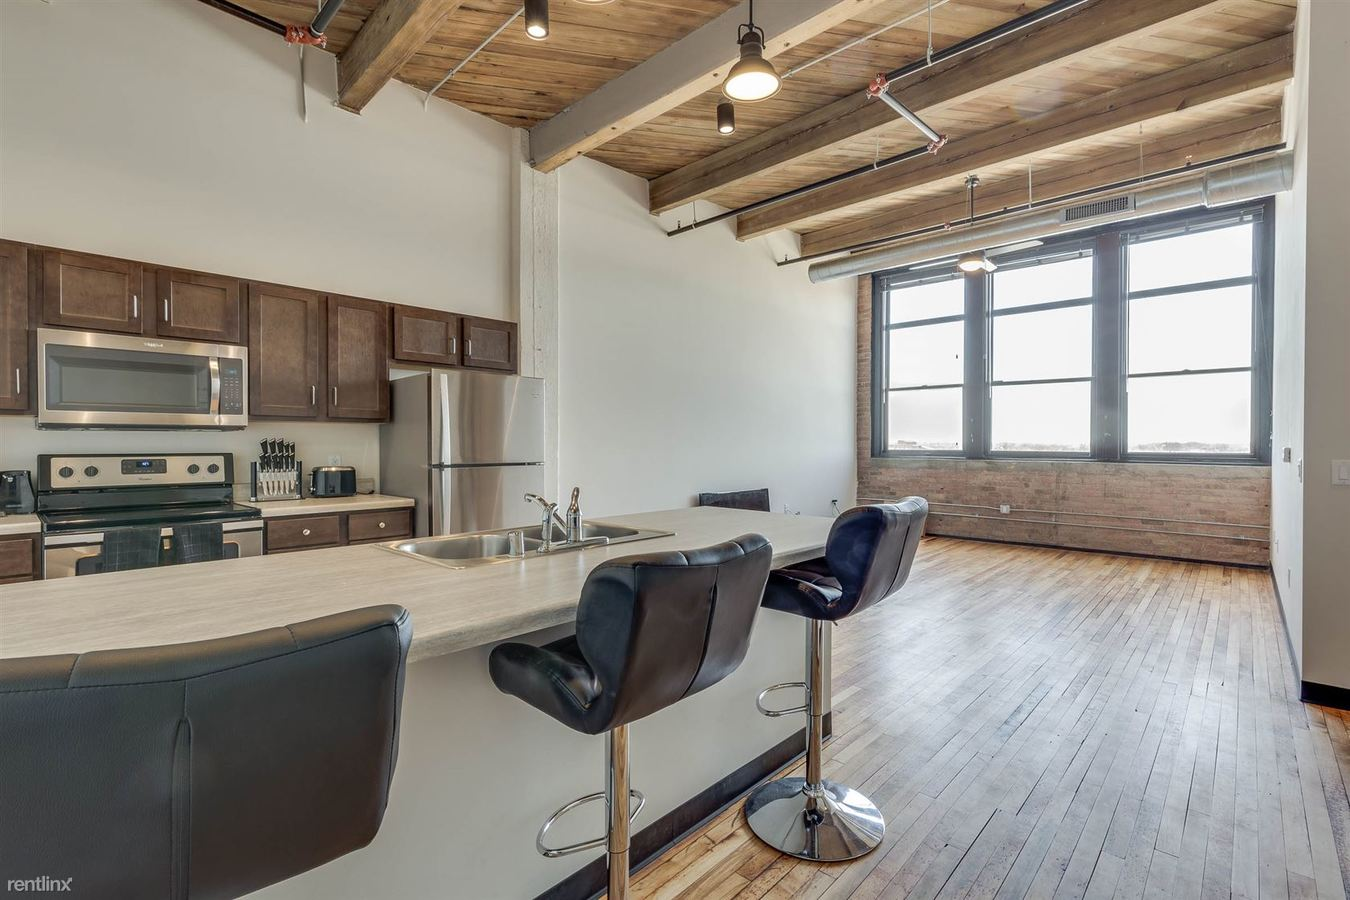 3 Bedrooms 2 Bathrooms Apartment for rent at Welford Sanders Historic Lofts in Milwaukee, WI